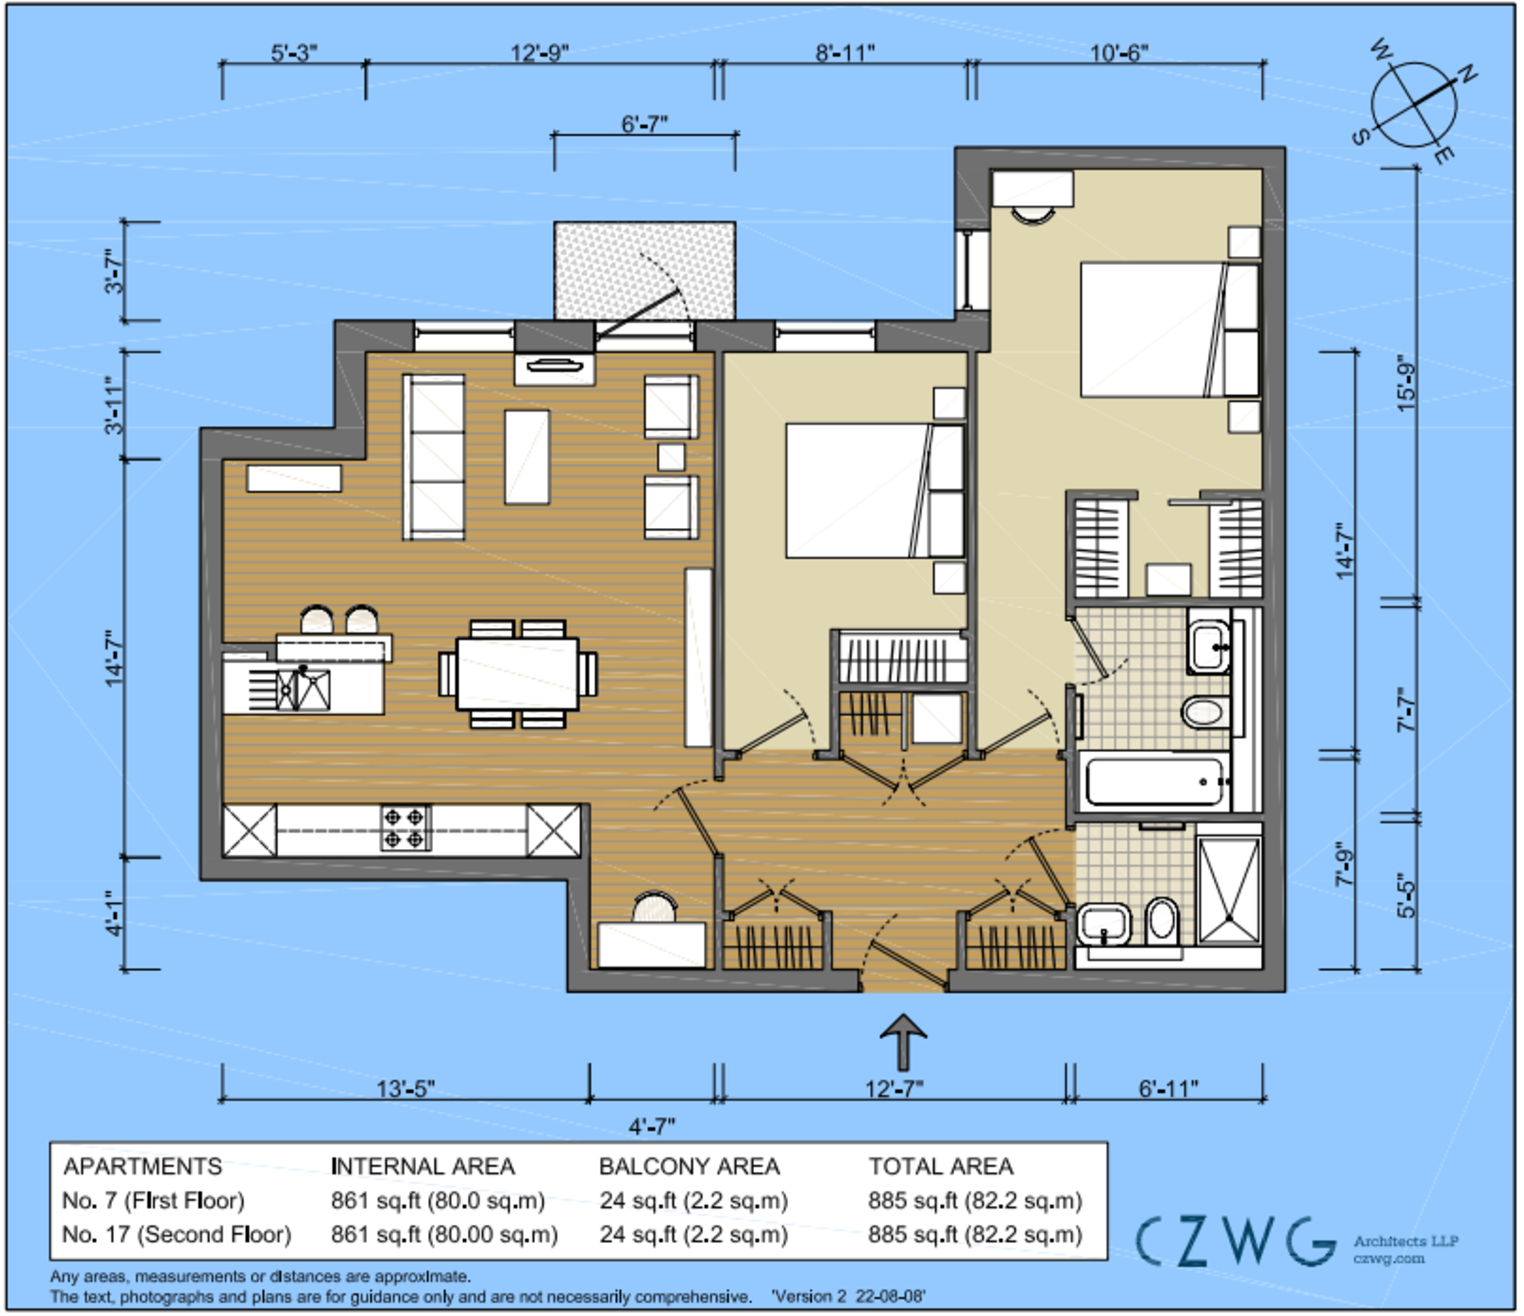 Floorplan for 17 Fairfield, Brewery Square